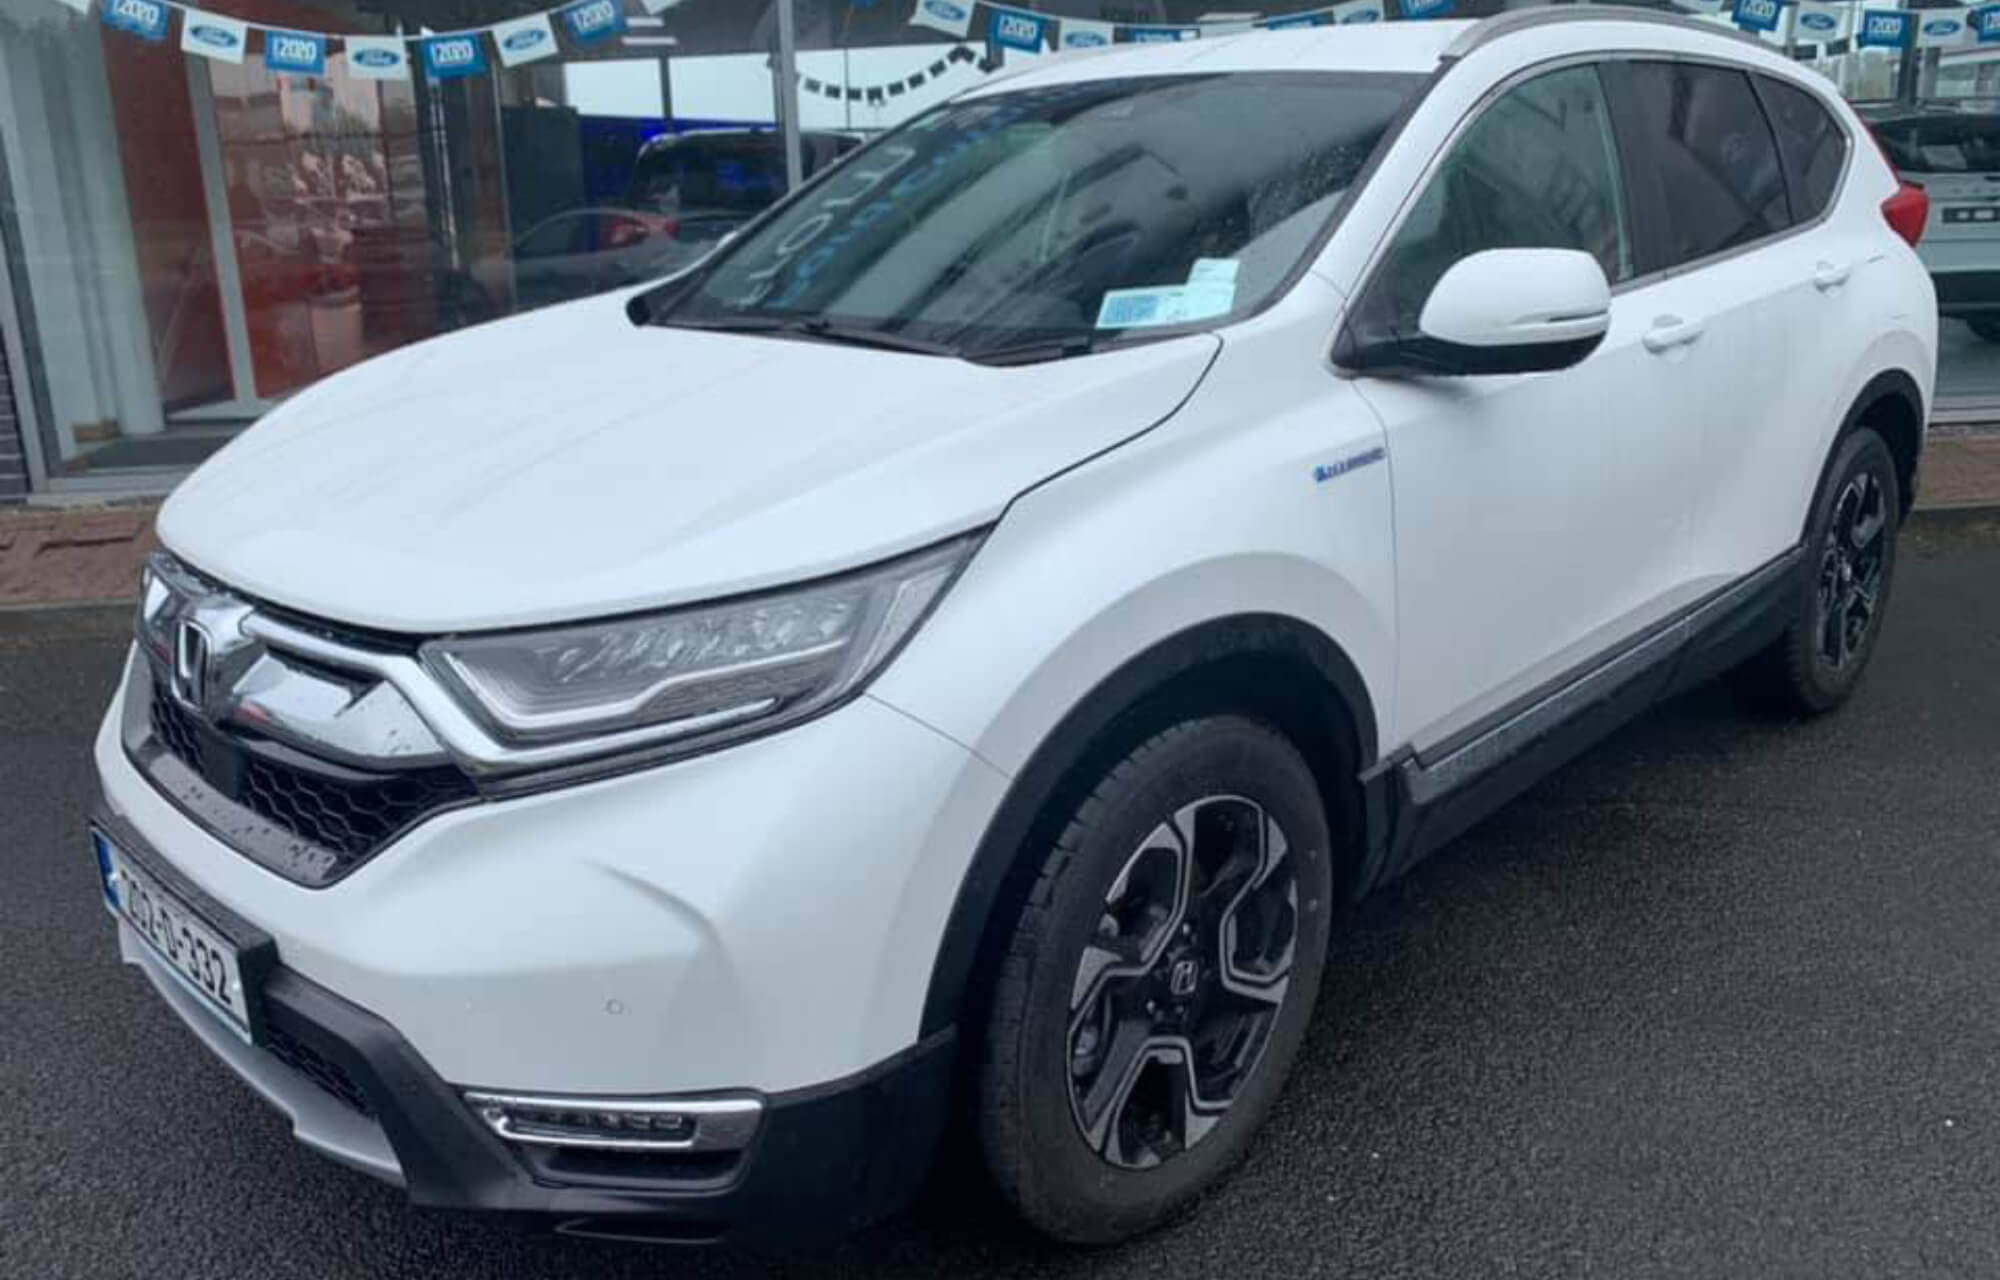 202 CR-V Hybrid 2.0 i-MMD available for test drives at Sheils Galway until Saturday 11th July